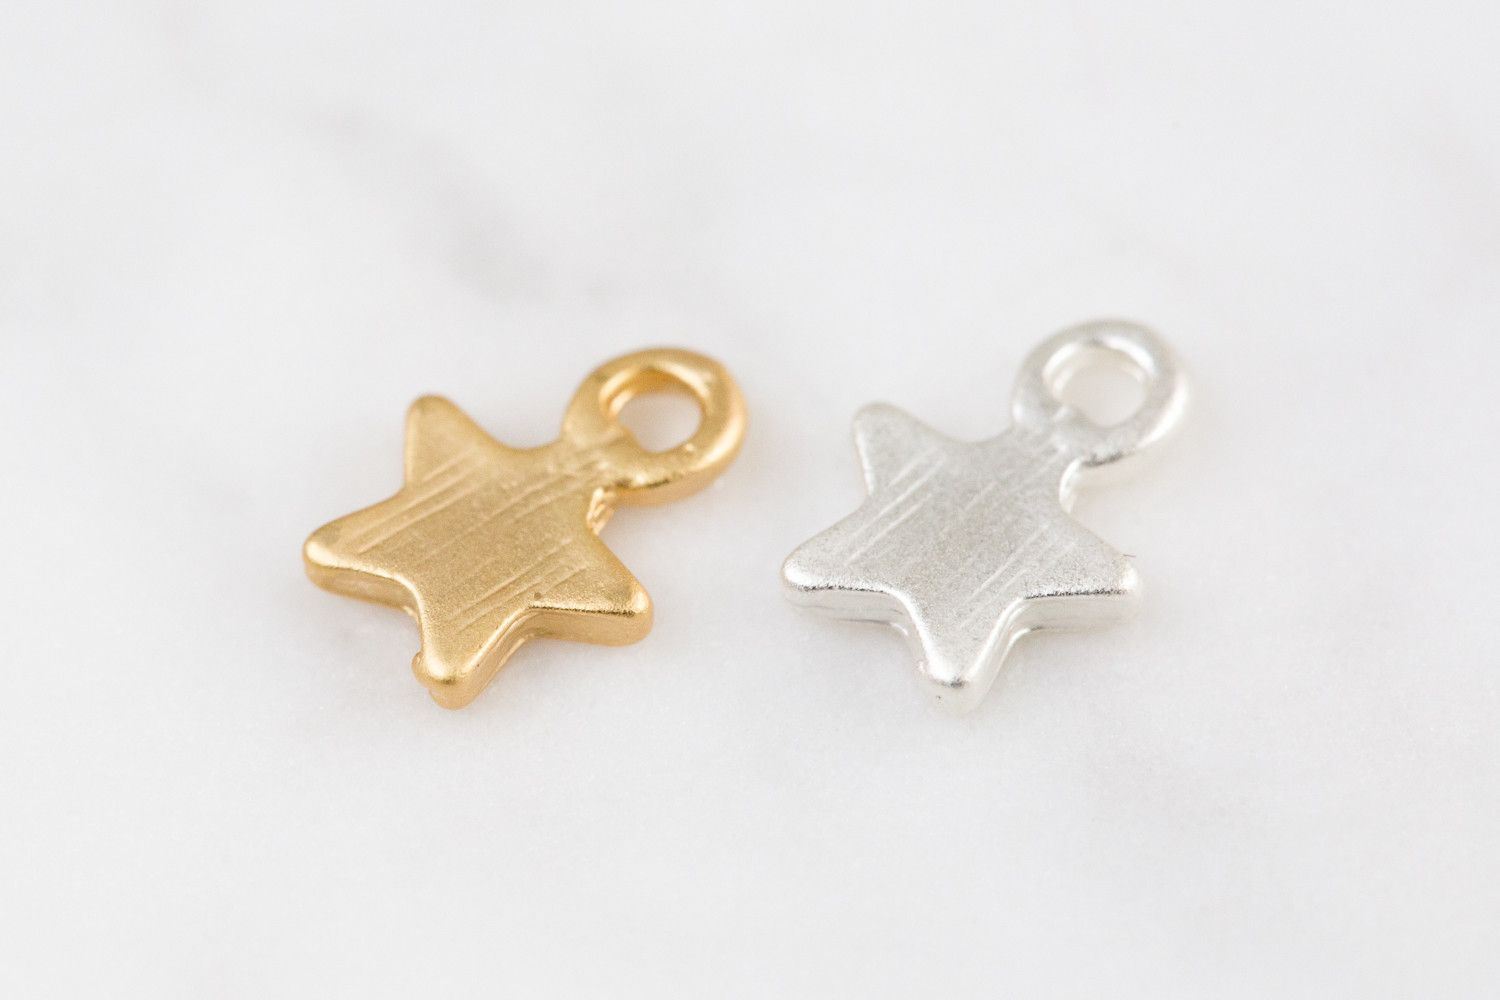 Star pendant a176*    size(mm):07*07 Craft Supplies Tools, Jewelry findings, Jewelry supplies, Jewelry making, Jewelry Beading, es,DIY pendant, Brass charm, Beading supplies, handmade pendant, jewelry gift, handmade item, Unique, DIY jewelry,